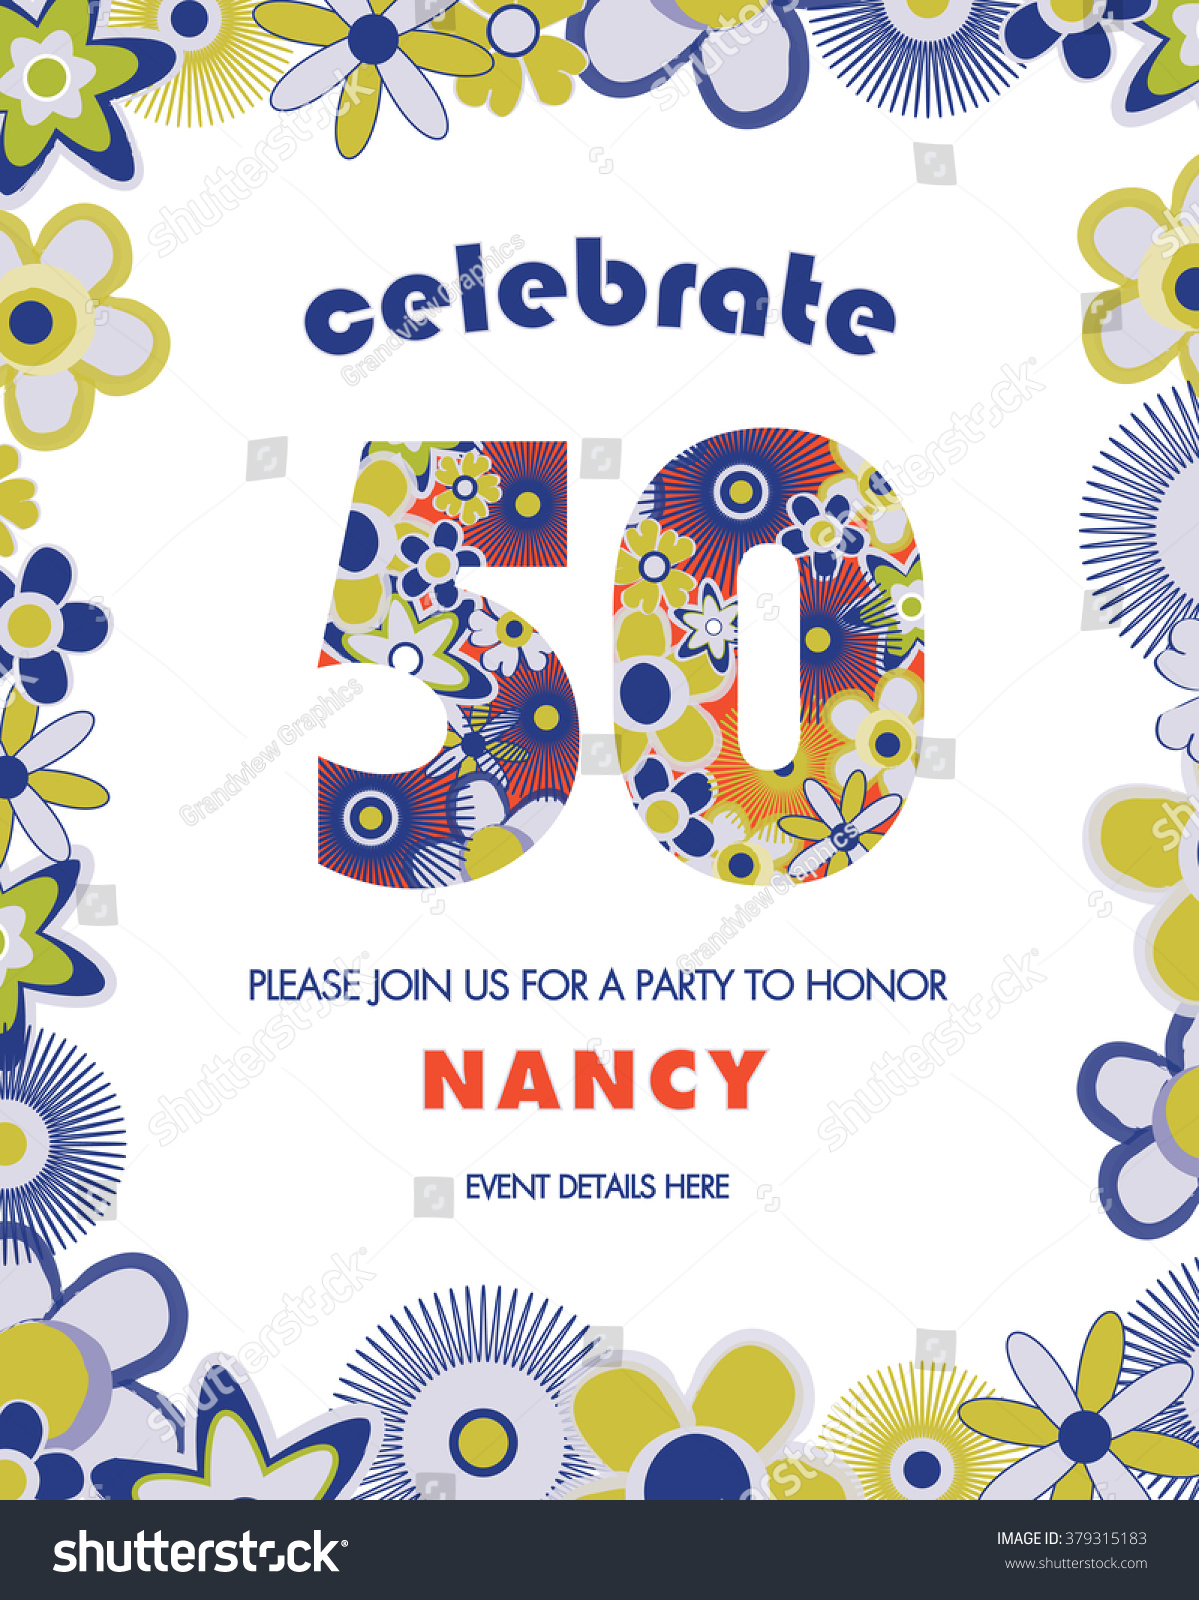 50th Birthday Party Invitation Template Retro Stock Vector (Royalty ...